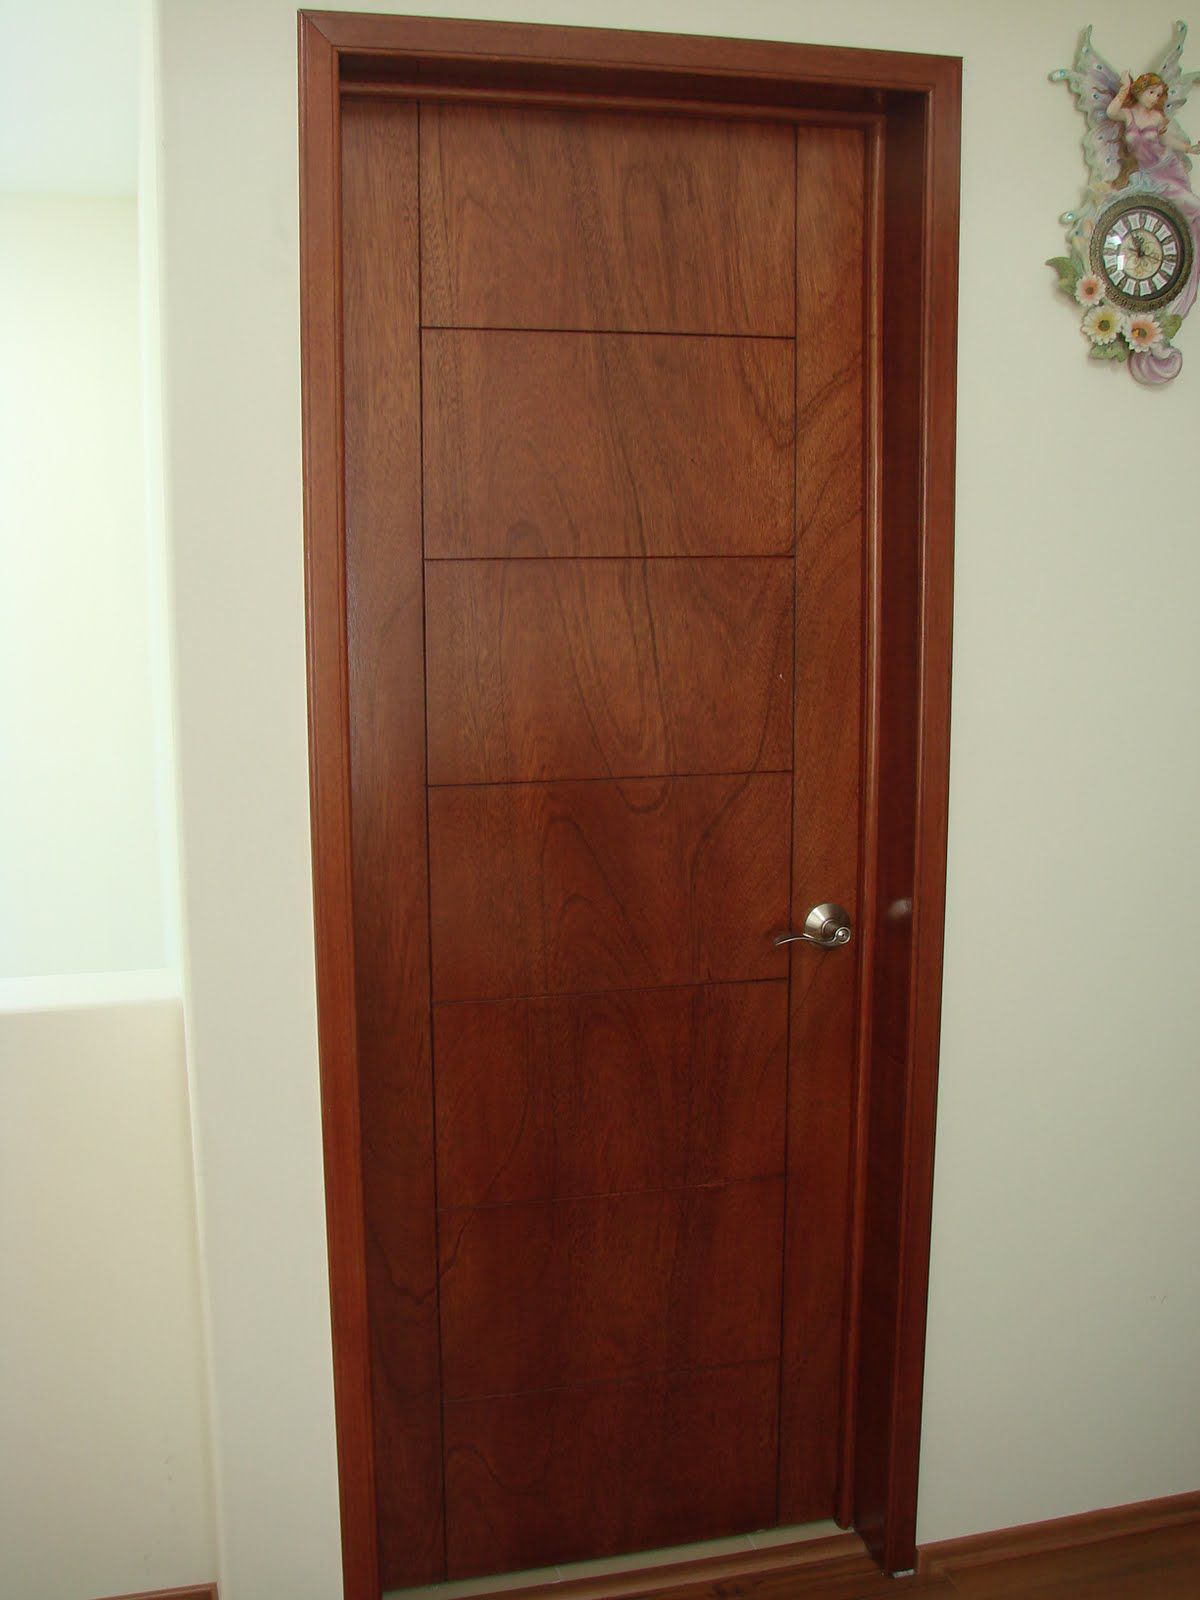 Doors furniture 6 panel solid wood door - Pueras de madera ...